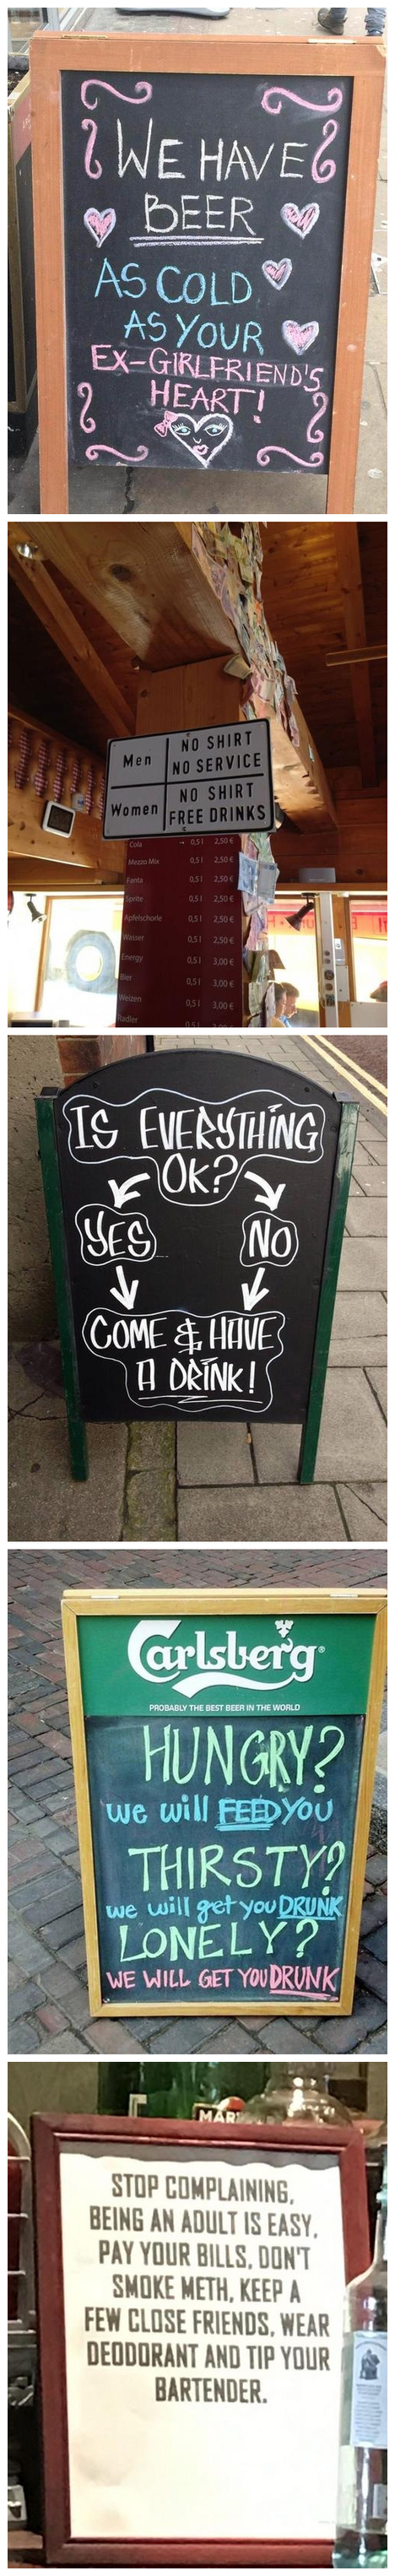 Funny and Creative Pub Signs